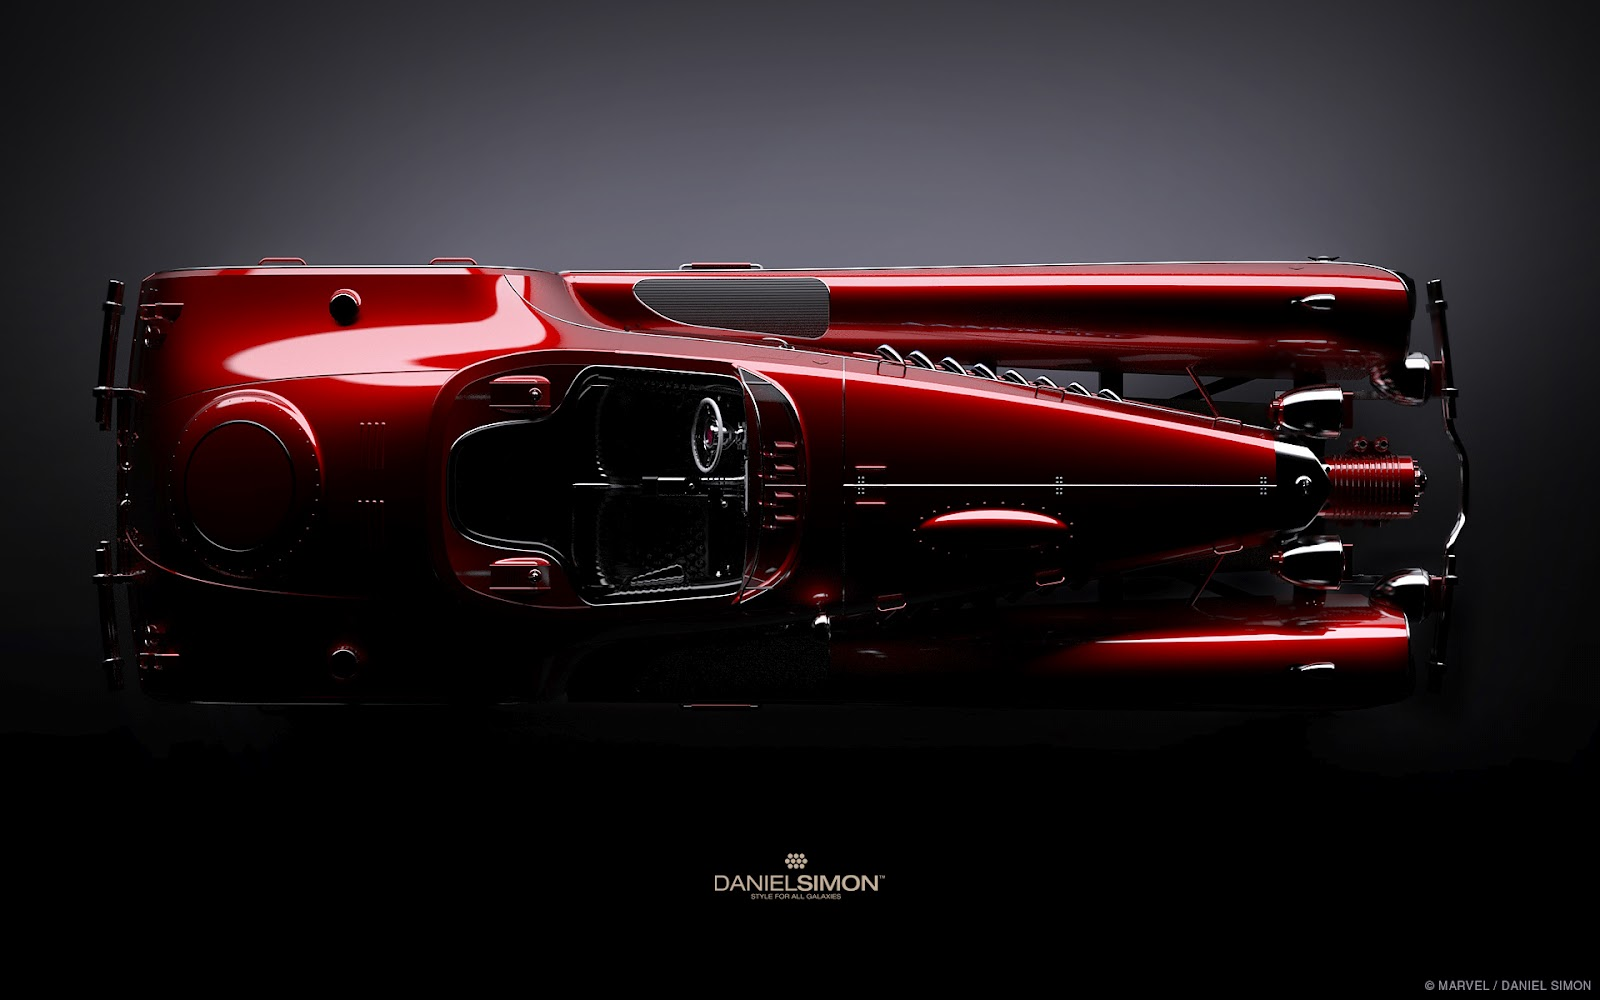 The Red Hydra Coupe | The Jalopy Journal The Jalopy Journal